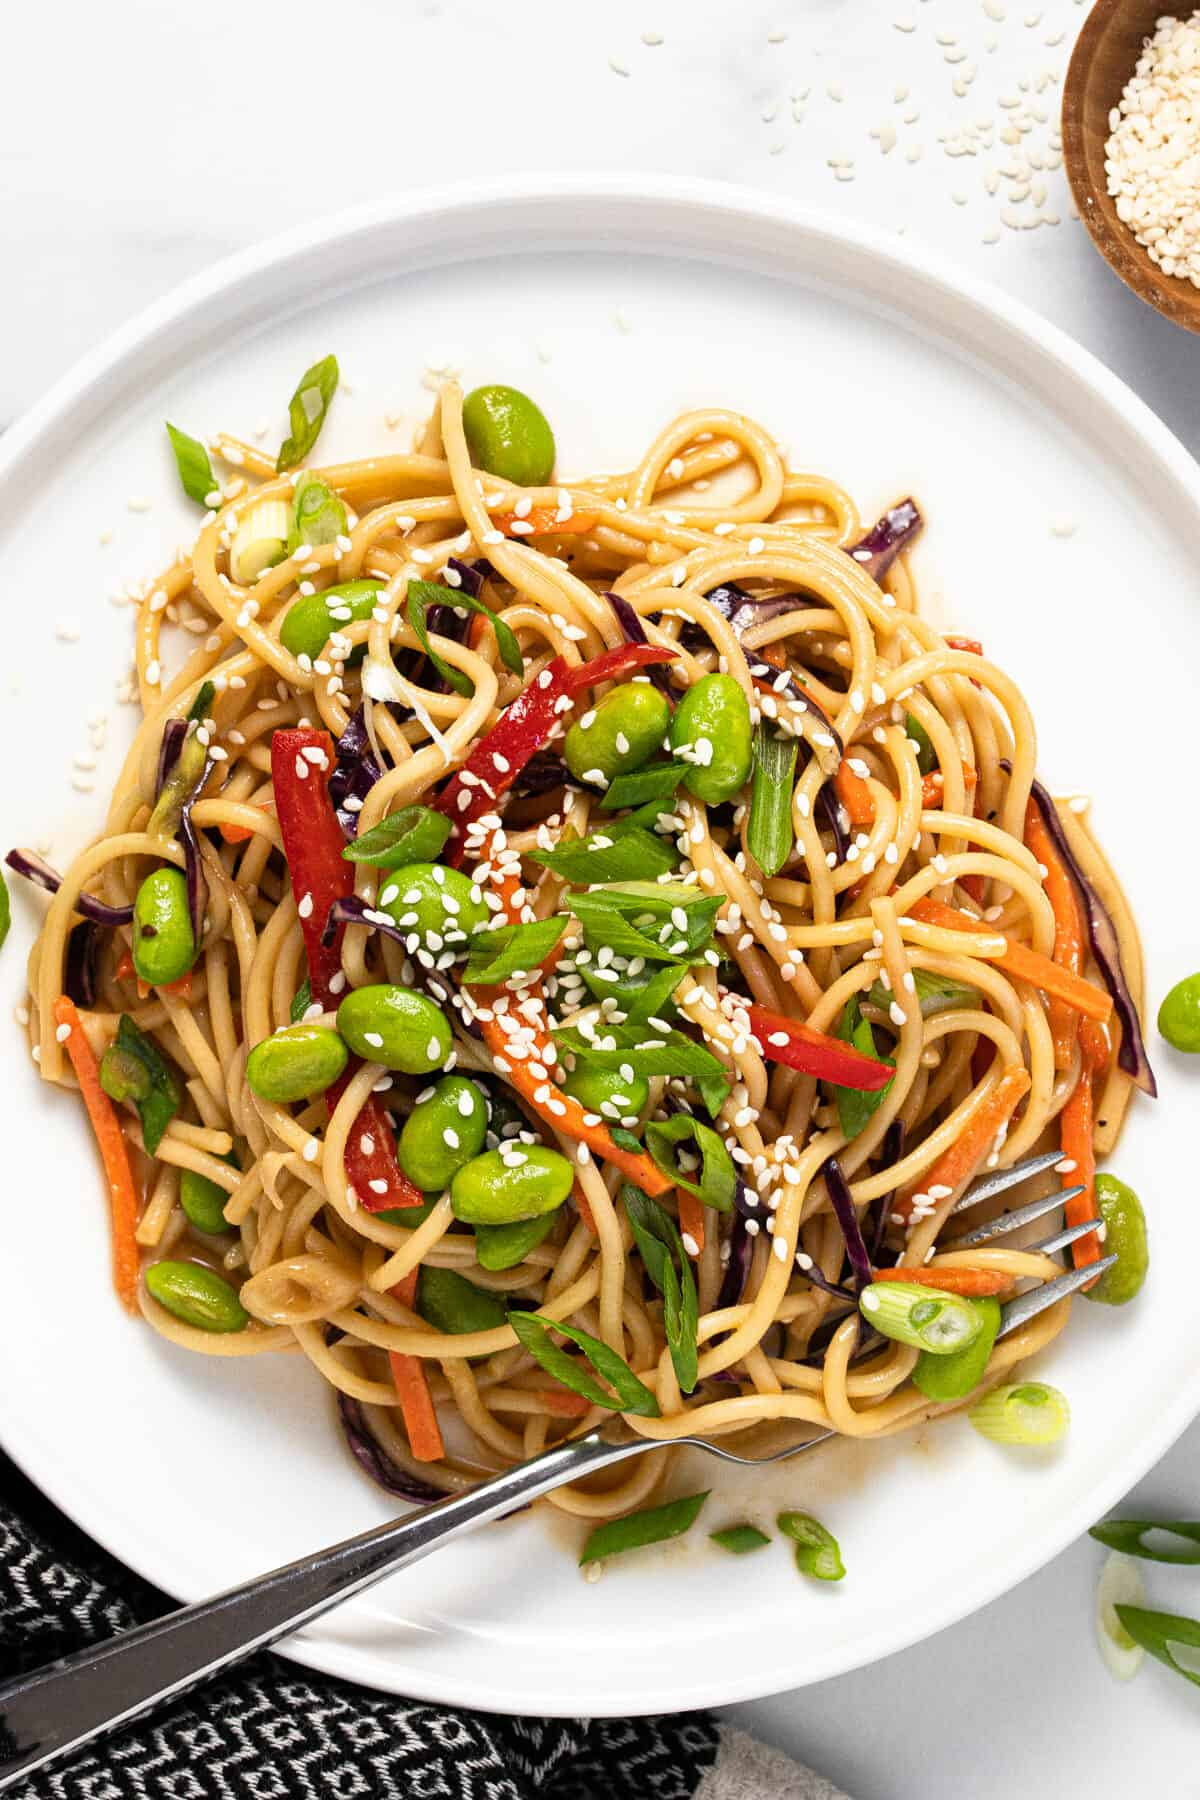 Large white plate filled with sesame noodle salad garnished with green onions